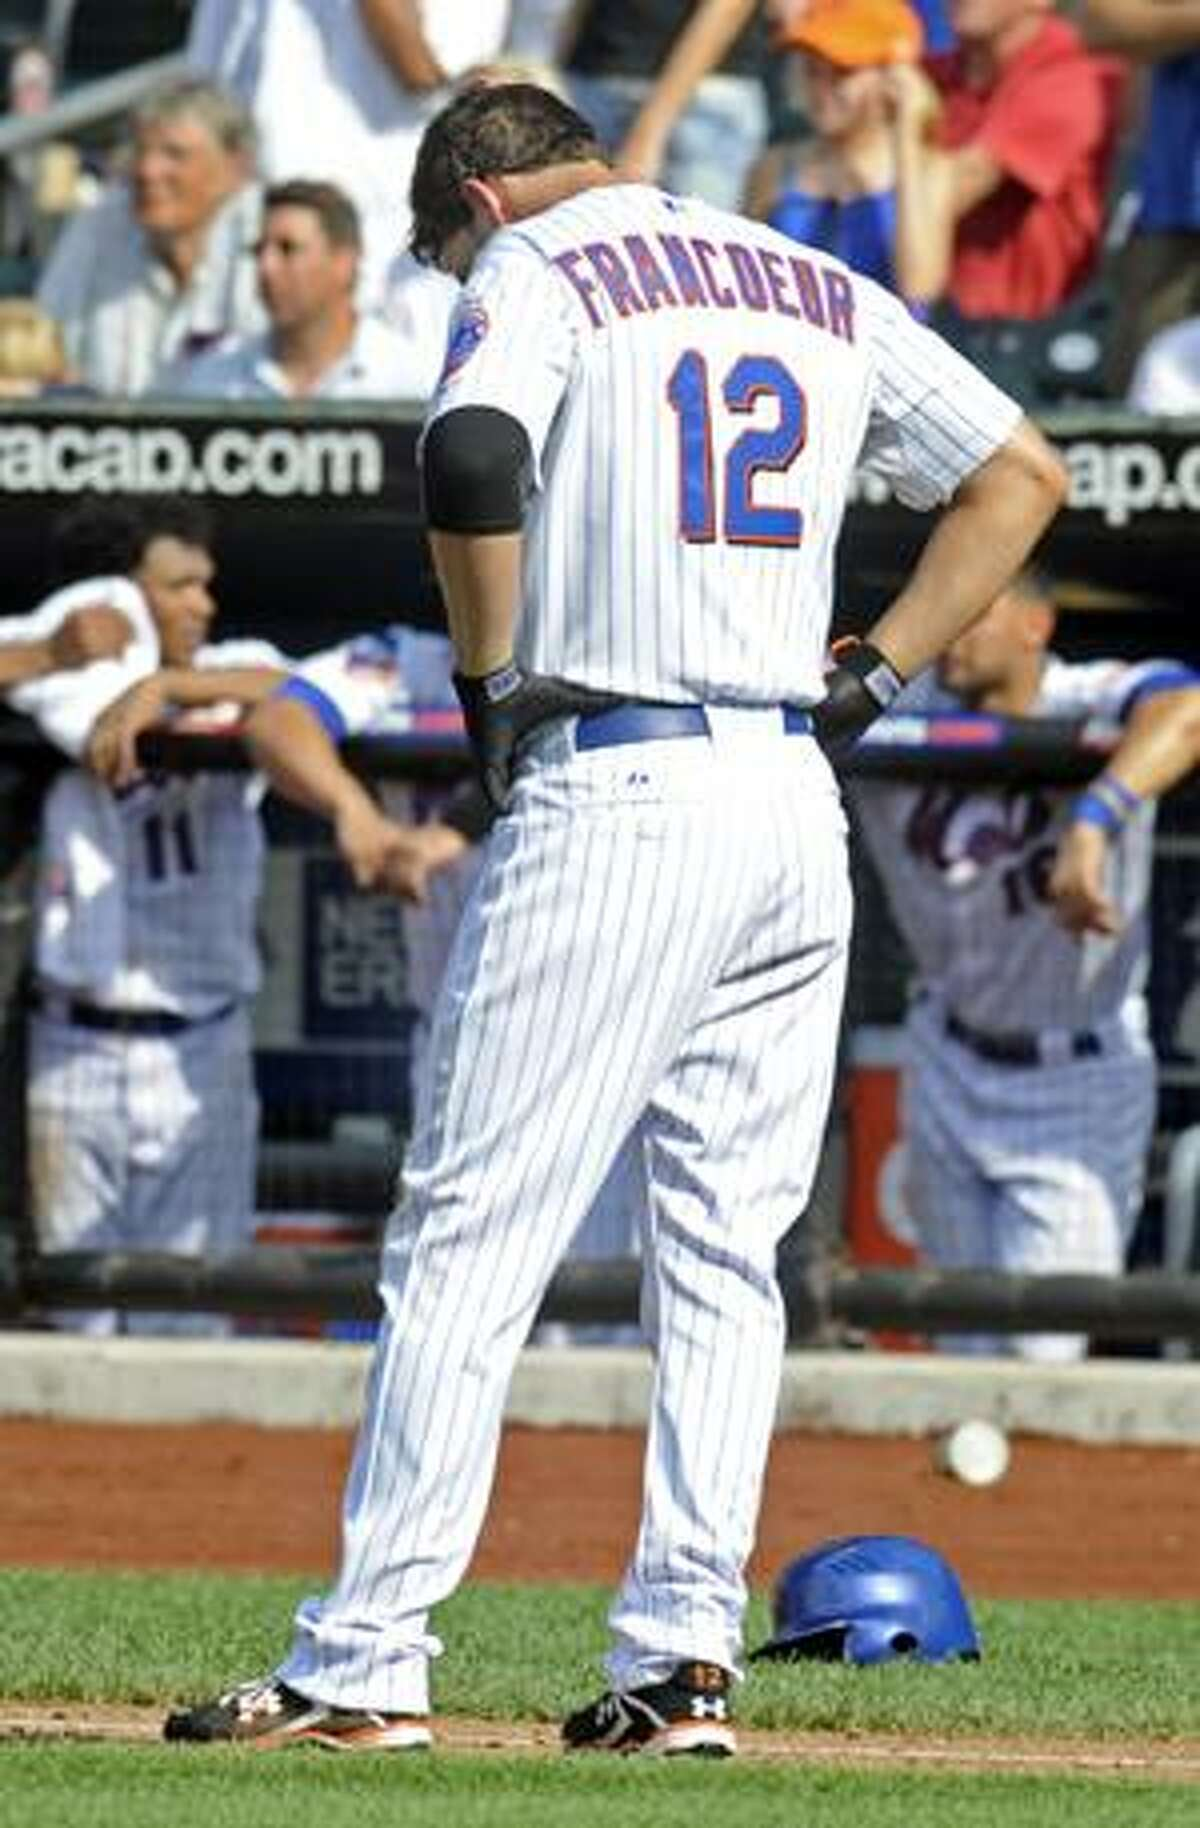 New York Mets' Jeff Francoeur reacts after hitting into an unassisted triple play to end their game with the Philadelphia Phillies in the bottom of the ninth inning at Citi Field in New York, Sunday. The Phillies won 9-7. (AP Photo/Henny Ray Abrams)